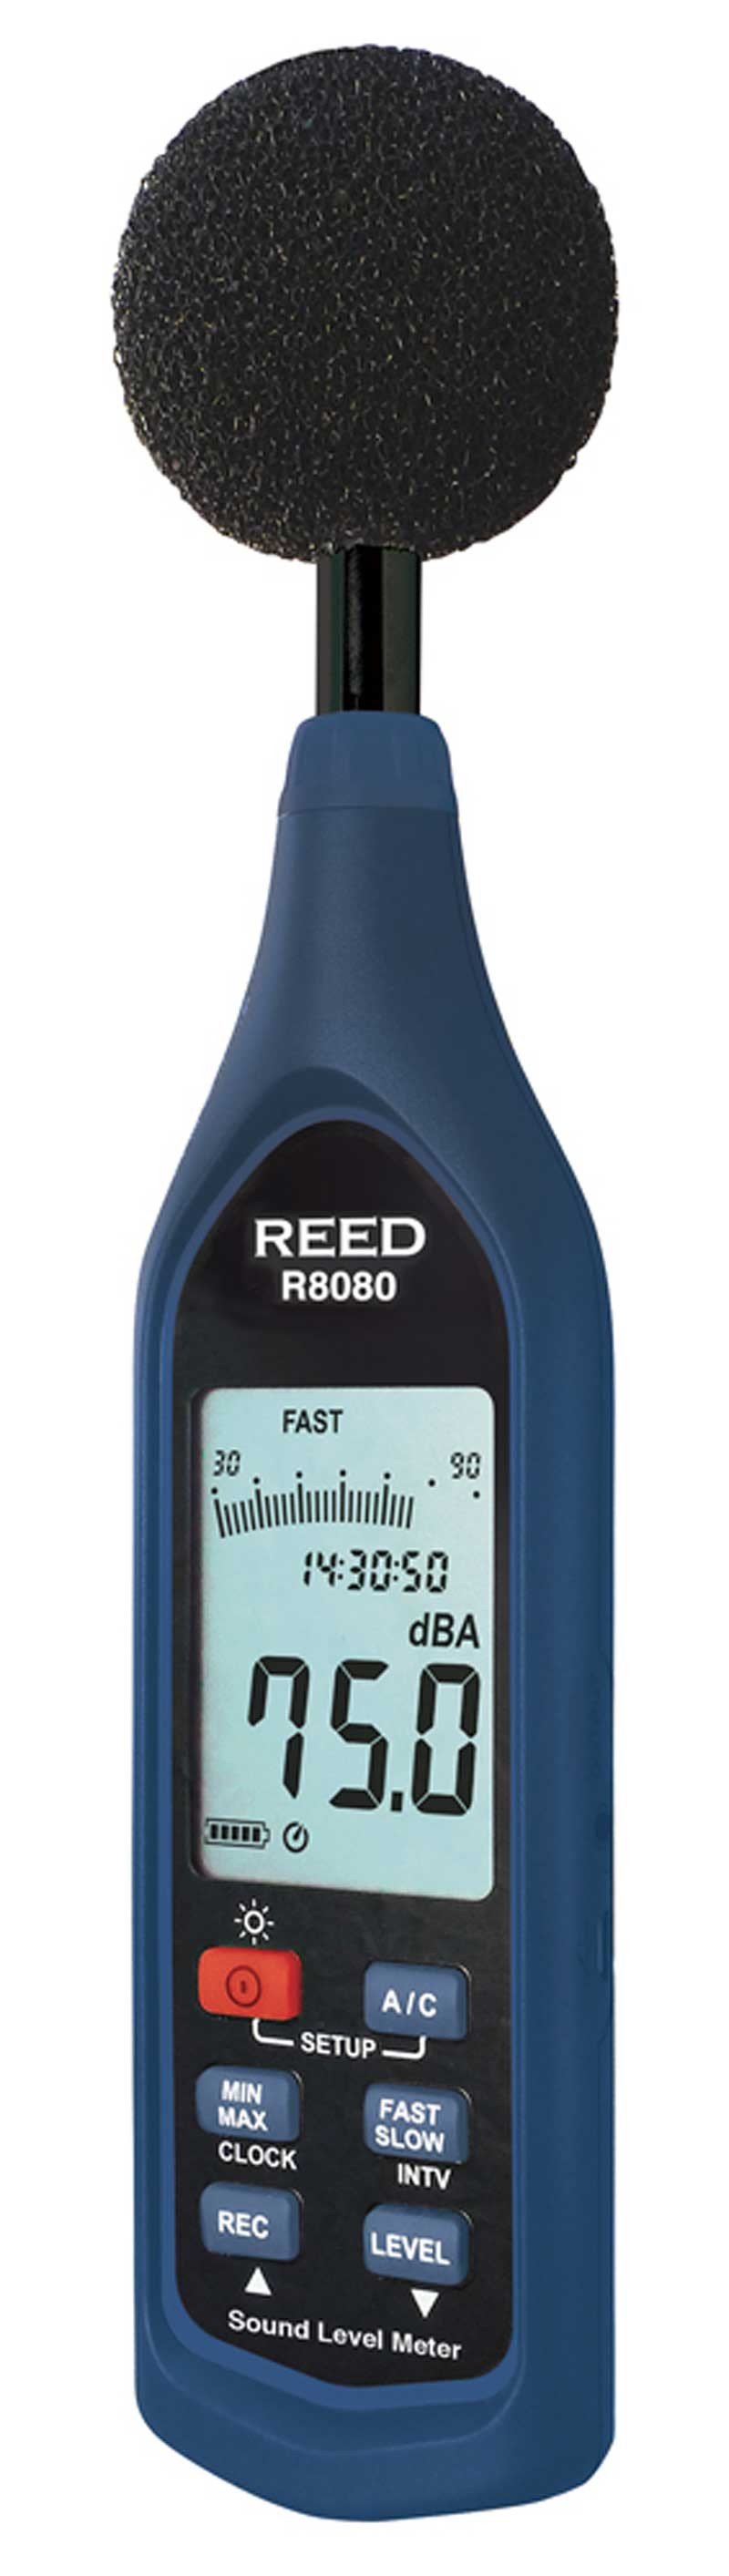 REED R8080 Data Logging Sound Level Meter with Bargraph-